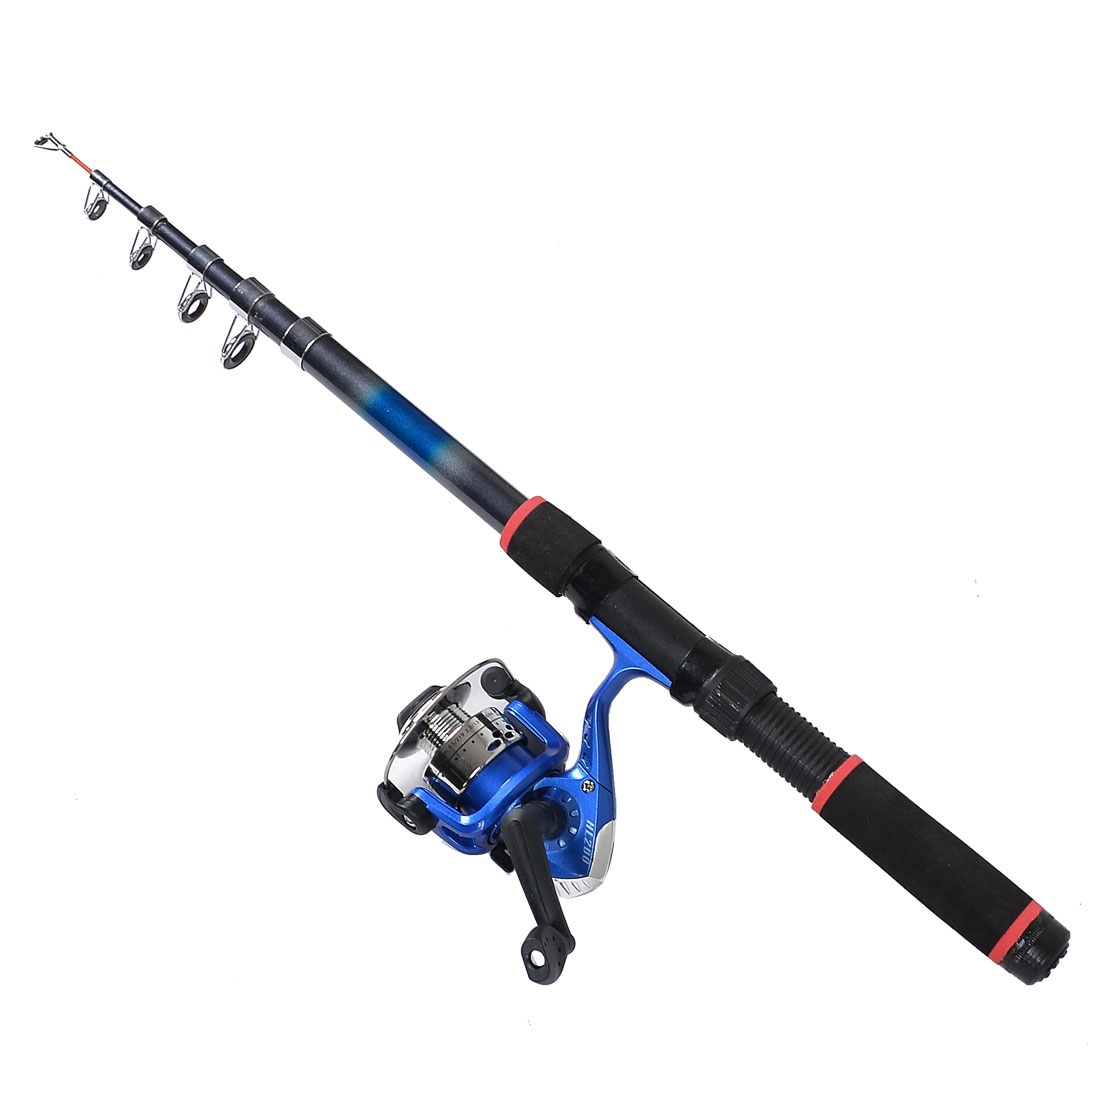 Blue Gray Telescopic 6 Sections Angling Fishing Rod 2.05M w Spinning Reel